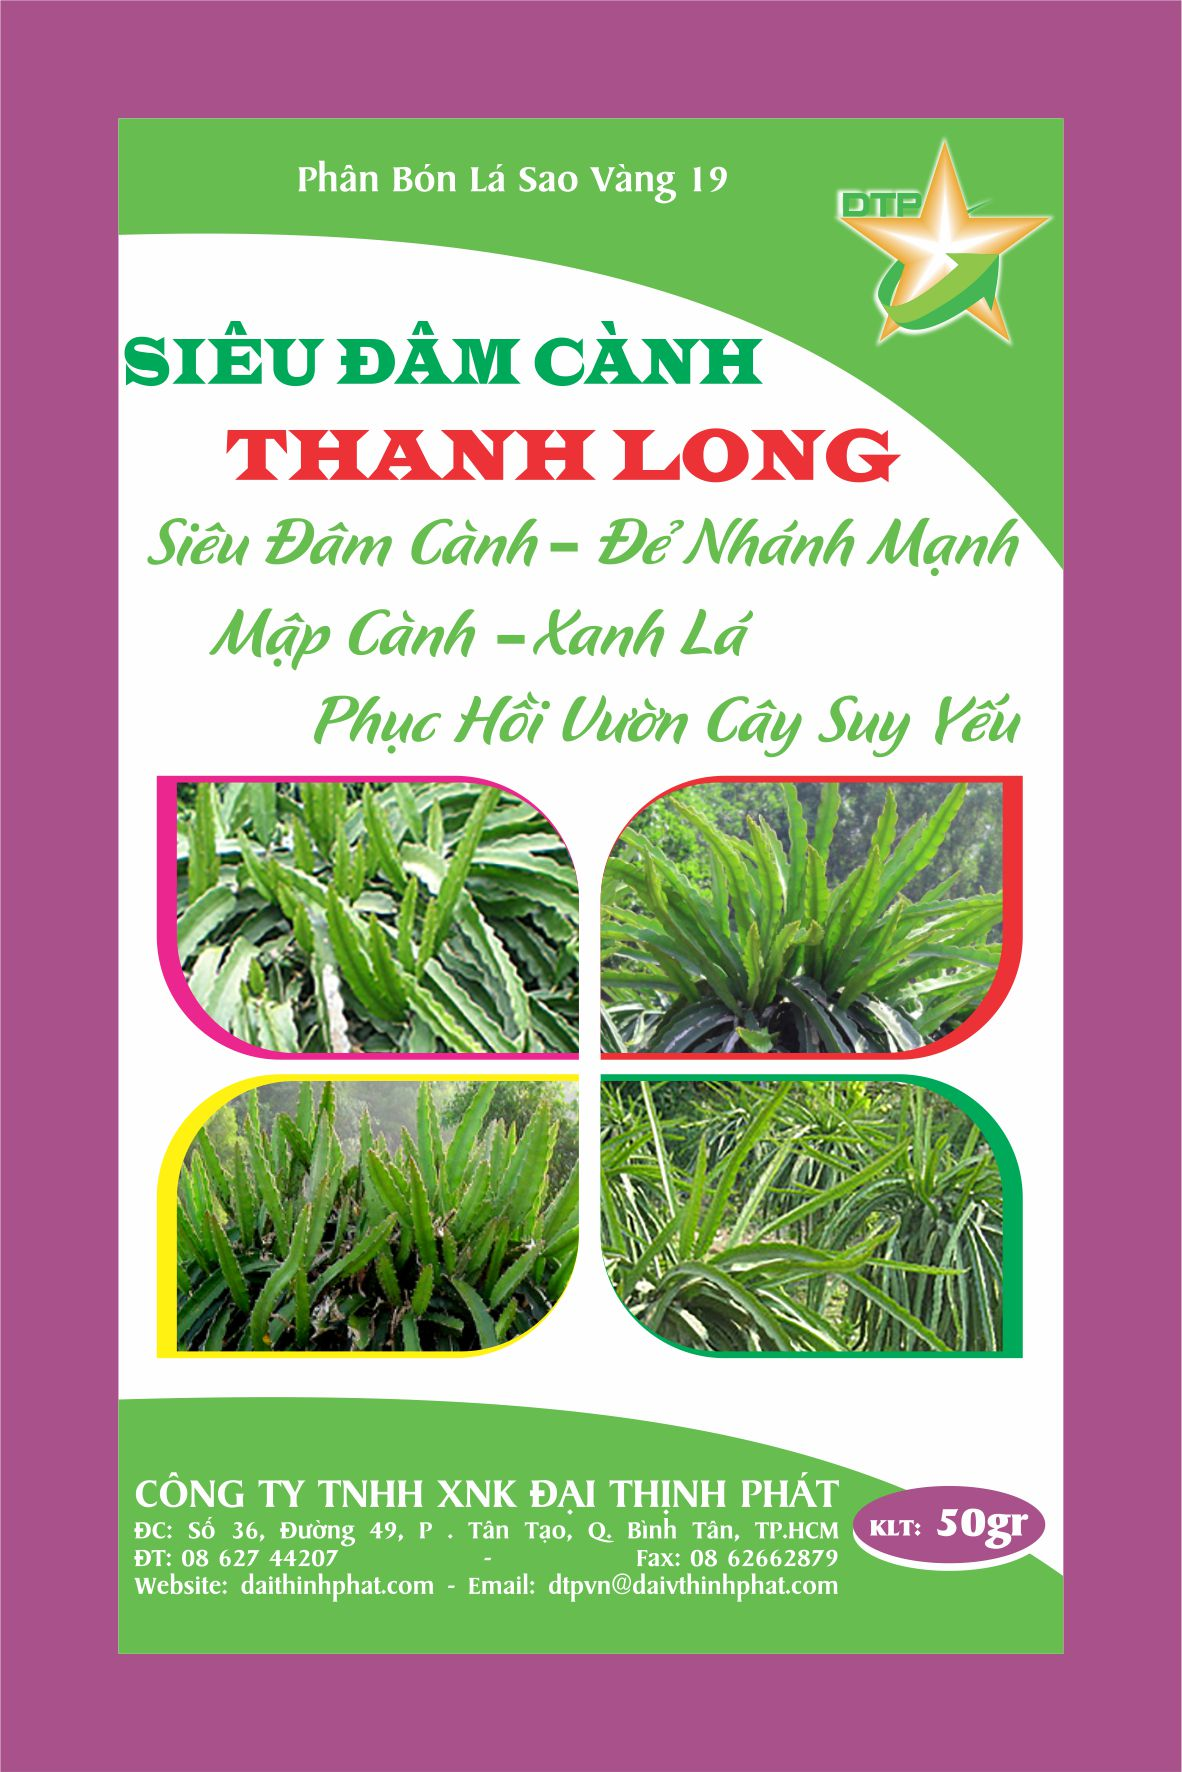 DAM CANH THANH LONG IN